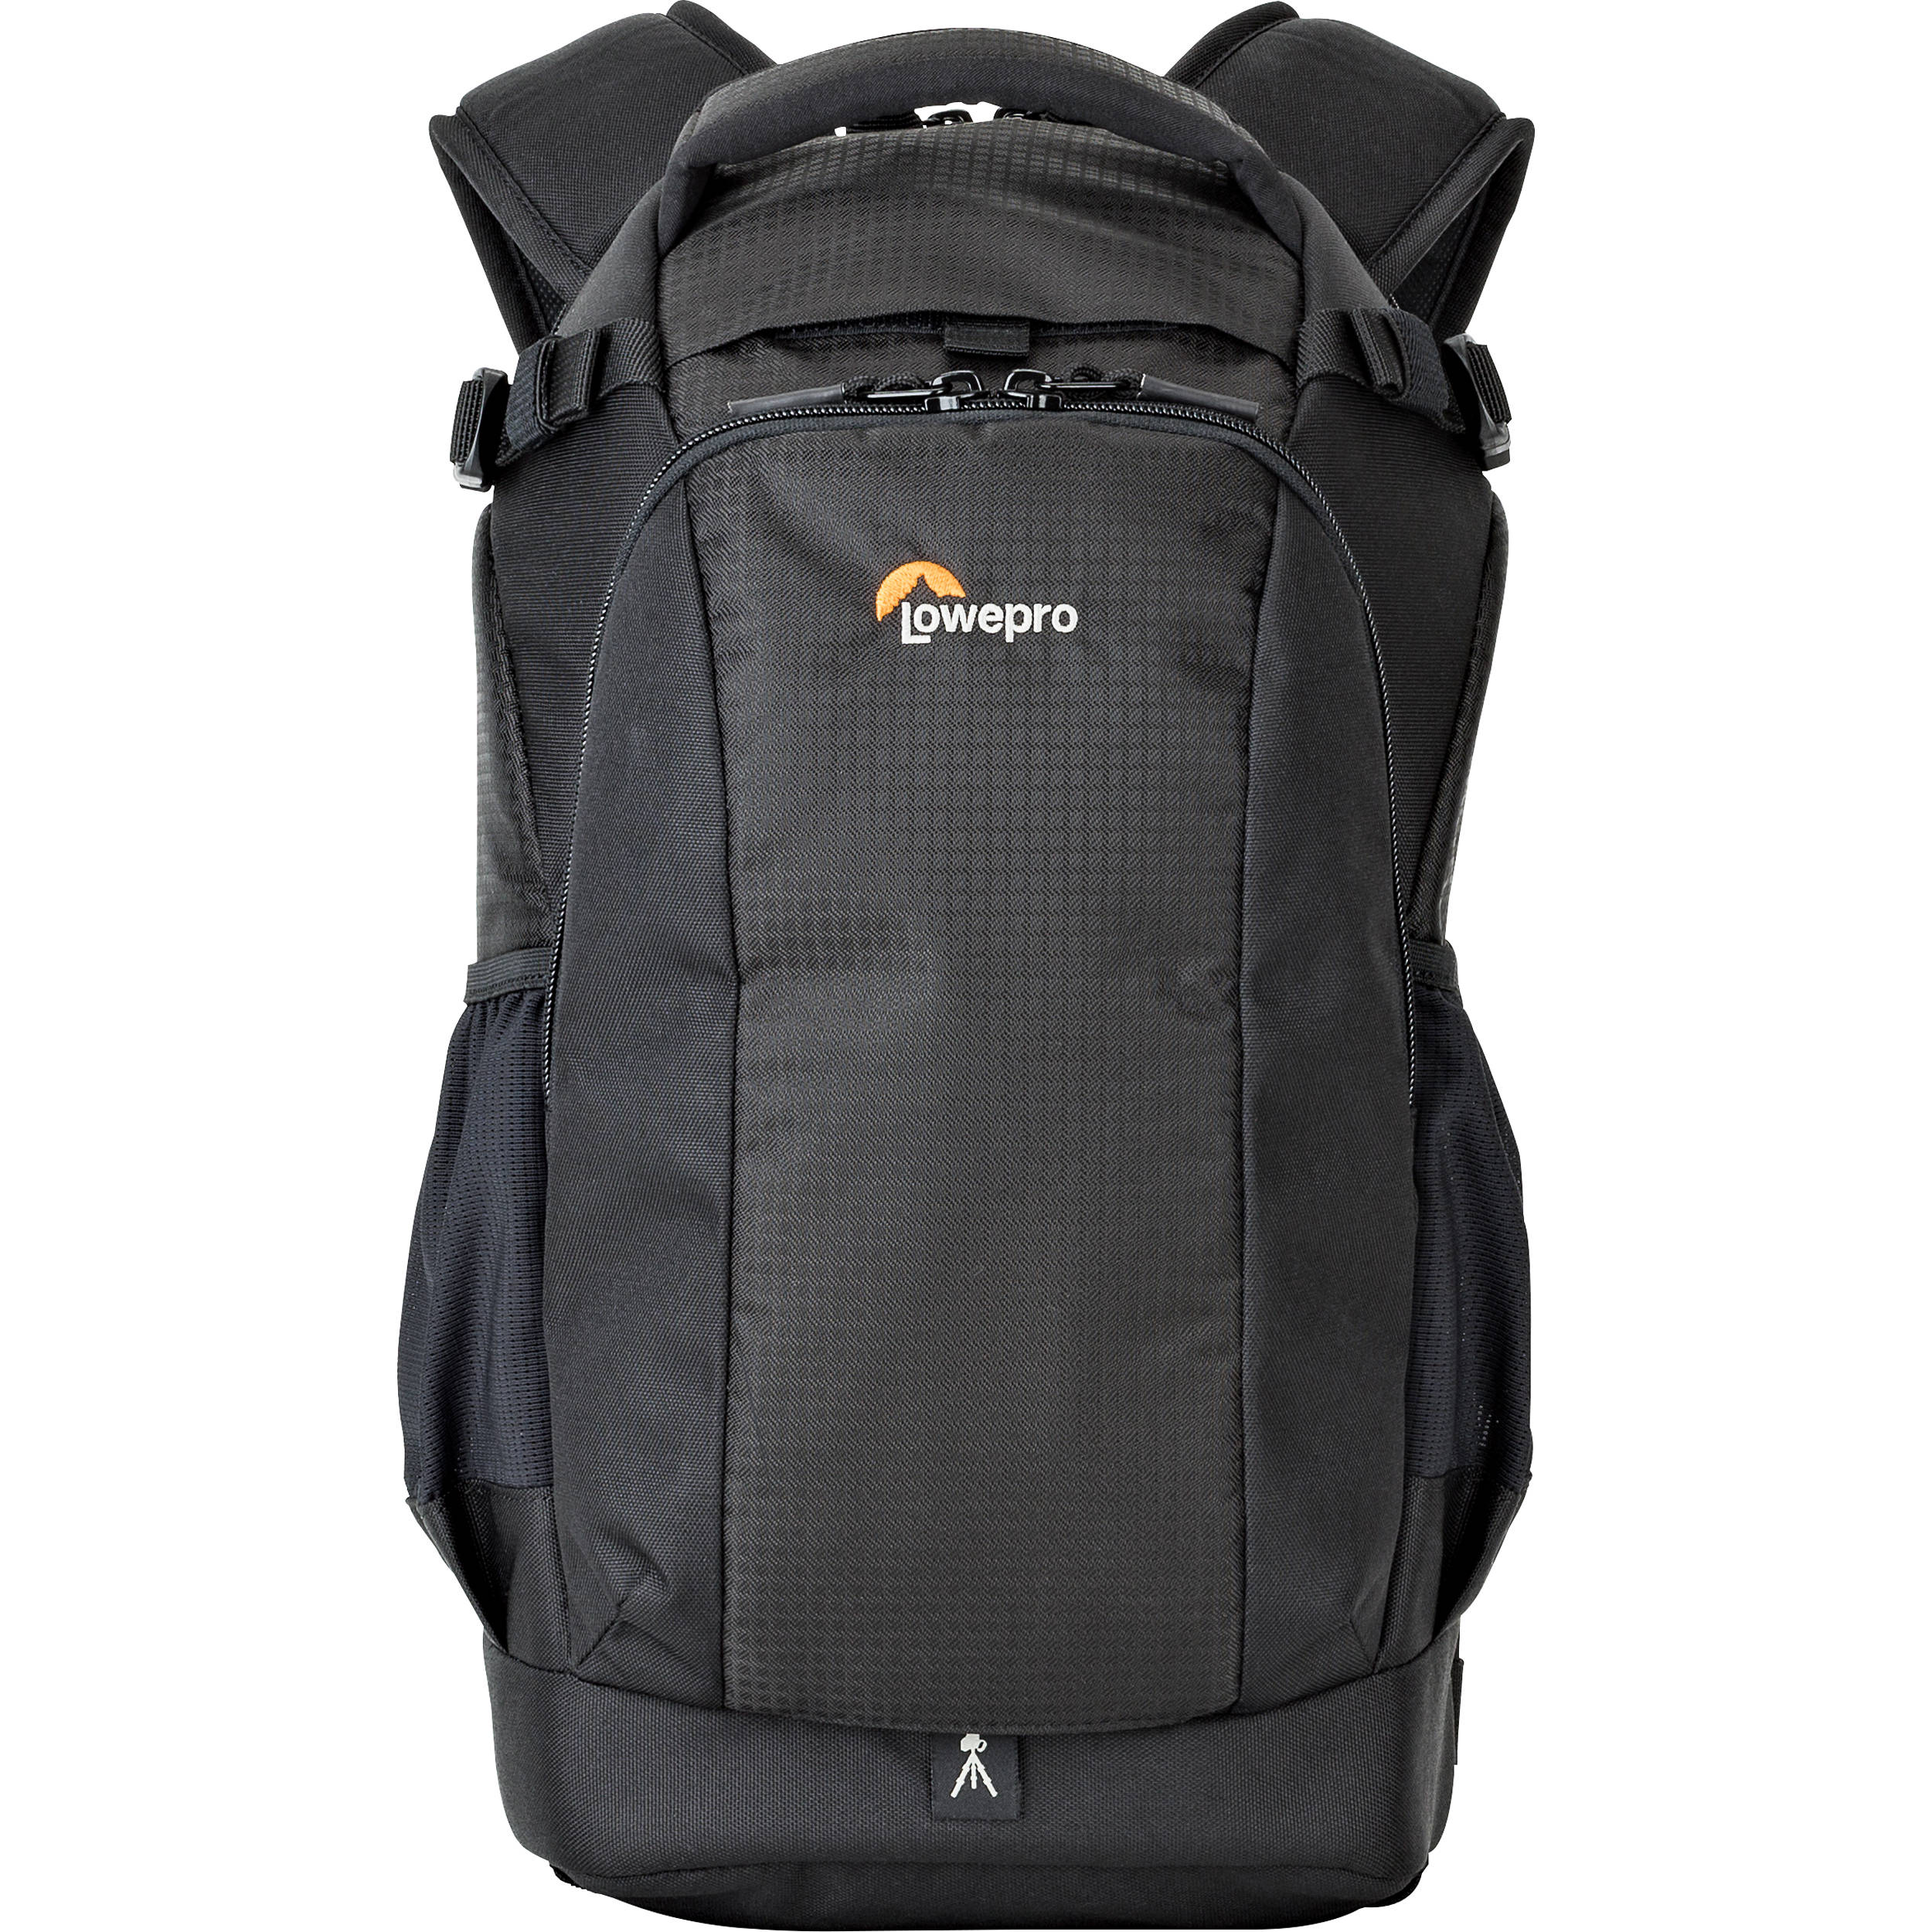 6c0d581f756 Lowepro Flipside 200 AW II Camera Backpack (Black) LP37125 B&H